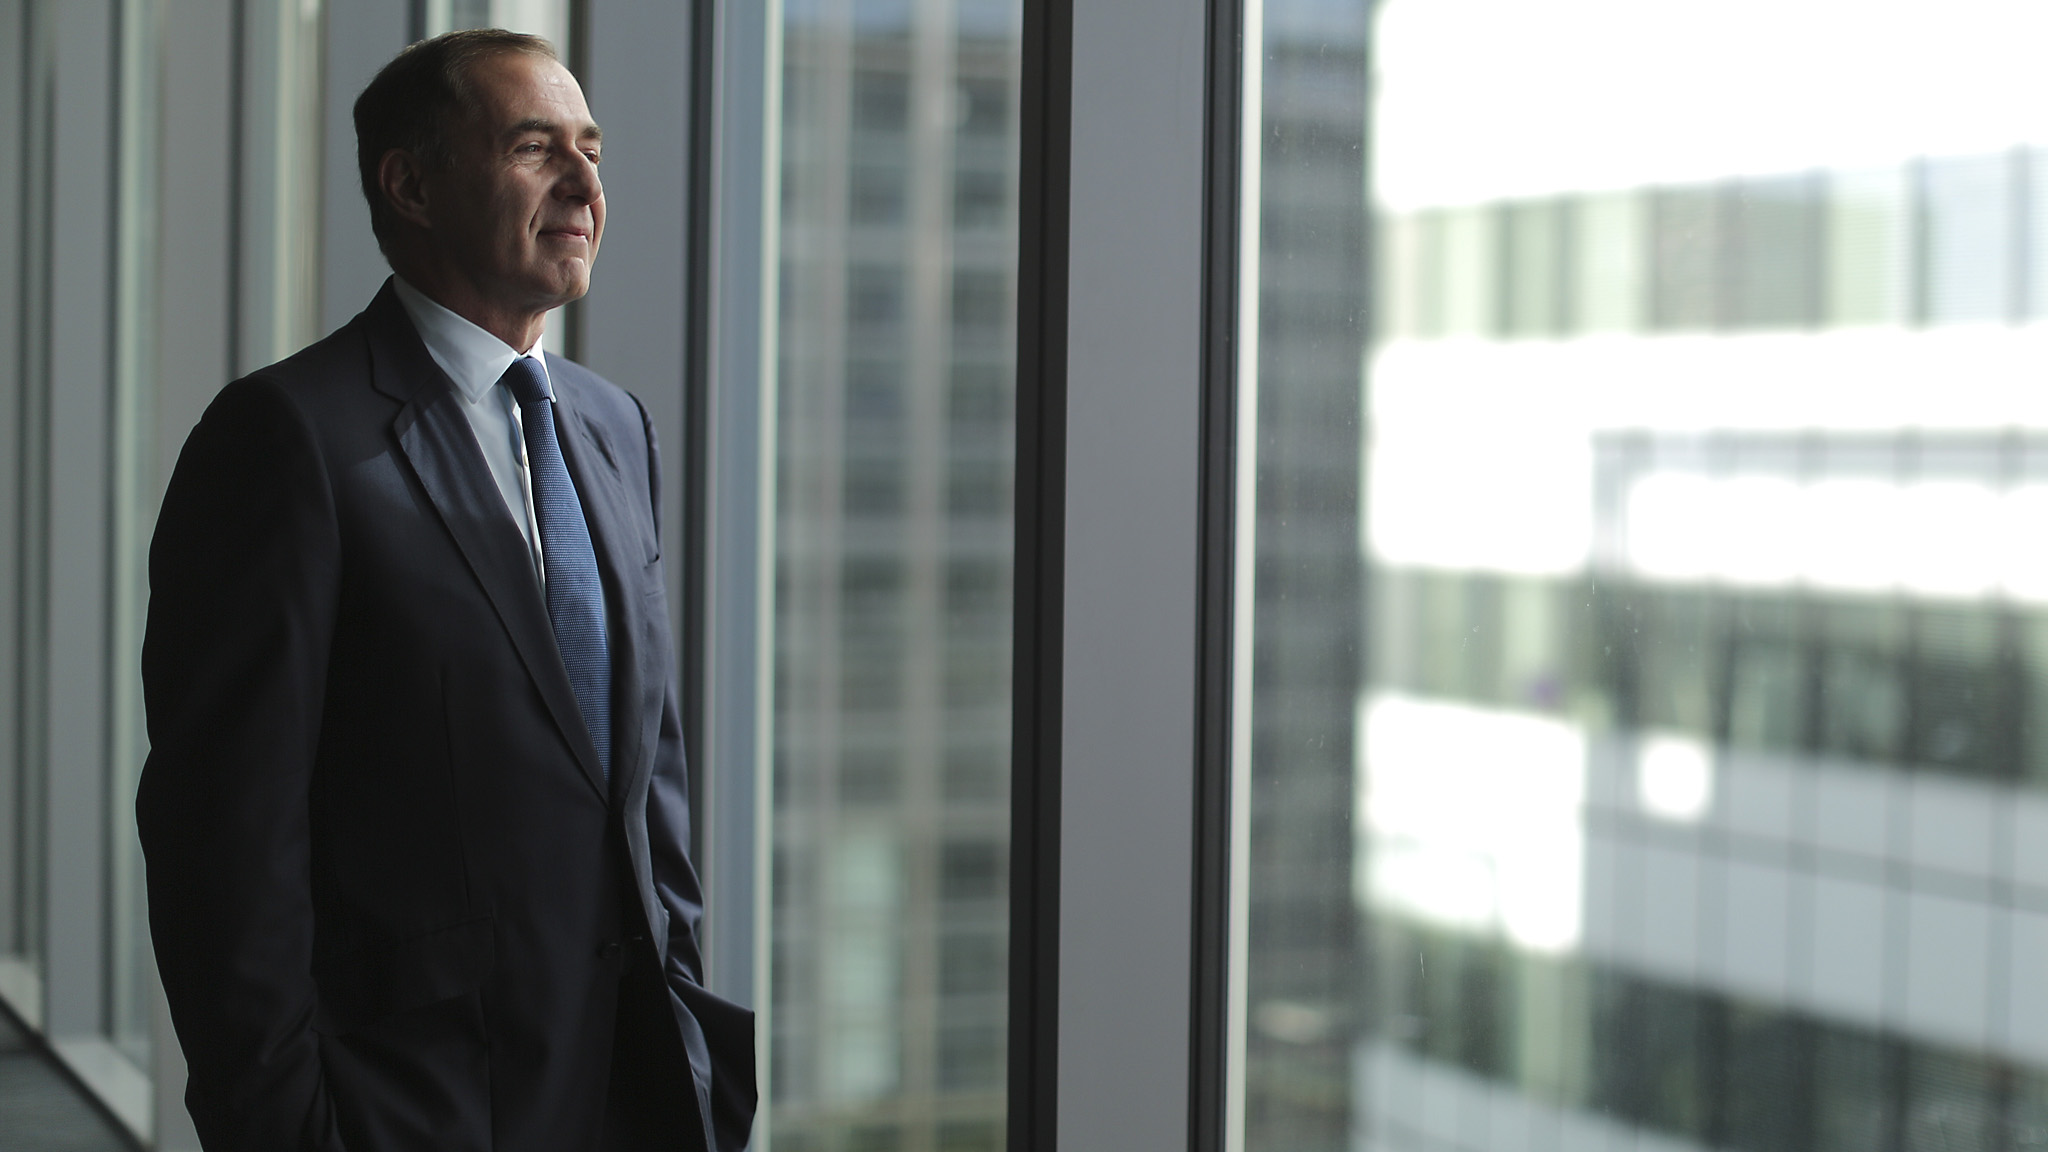 Simon Collins, chairman, KPMG UK: in search of the right